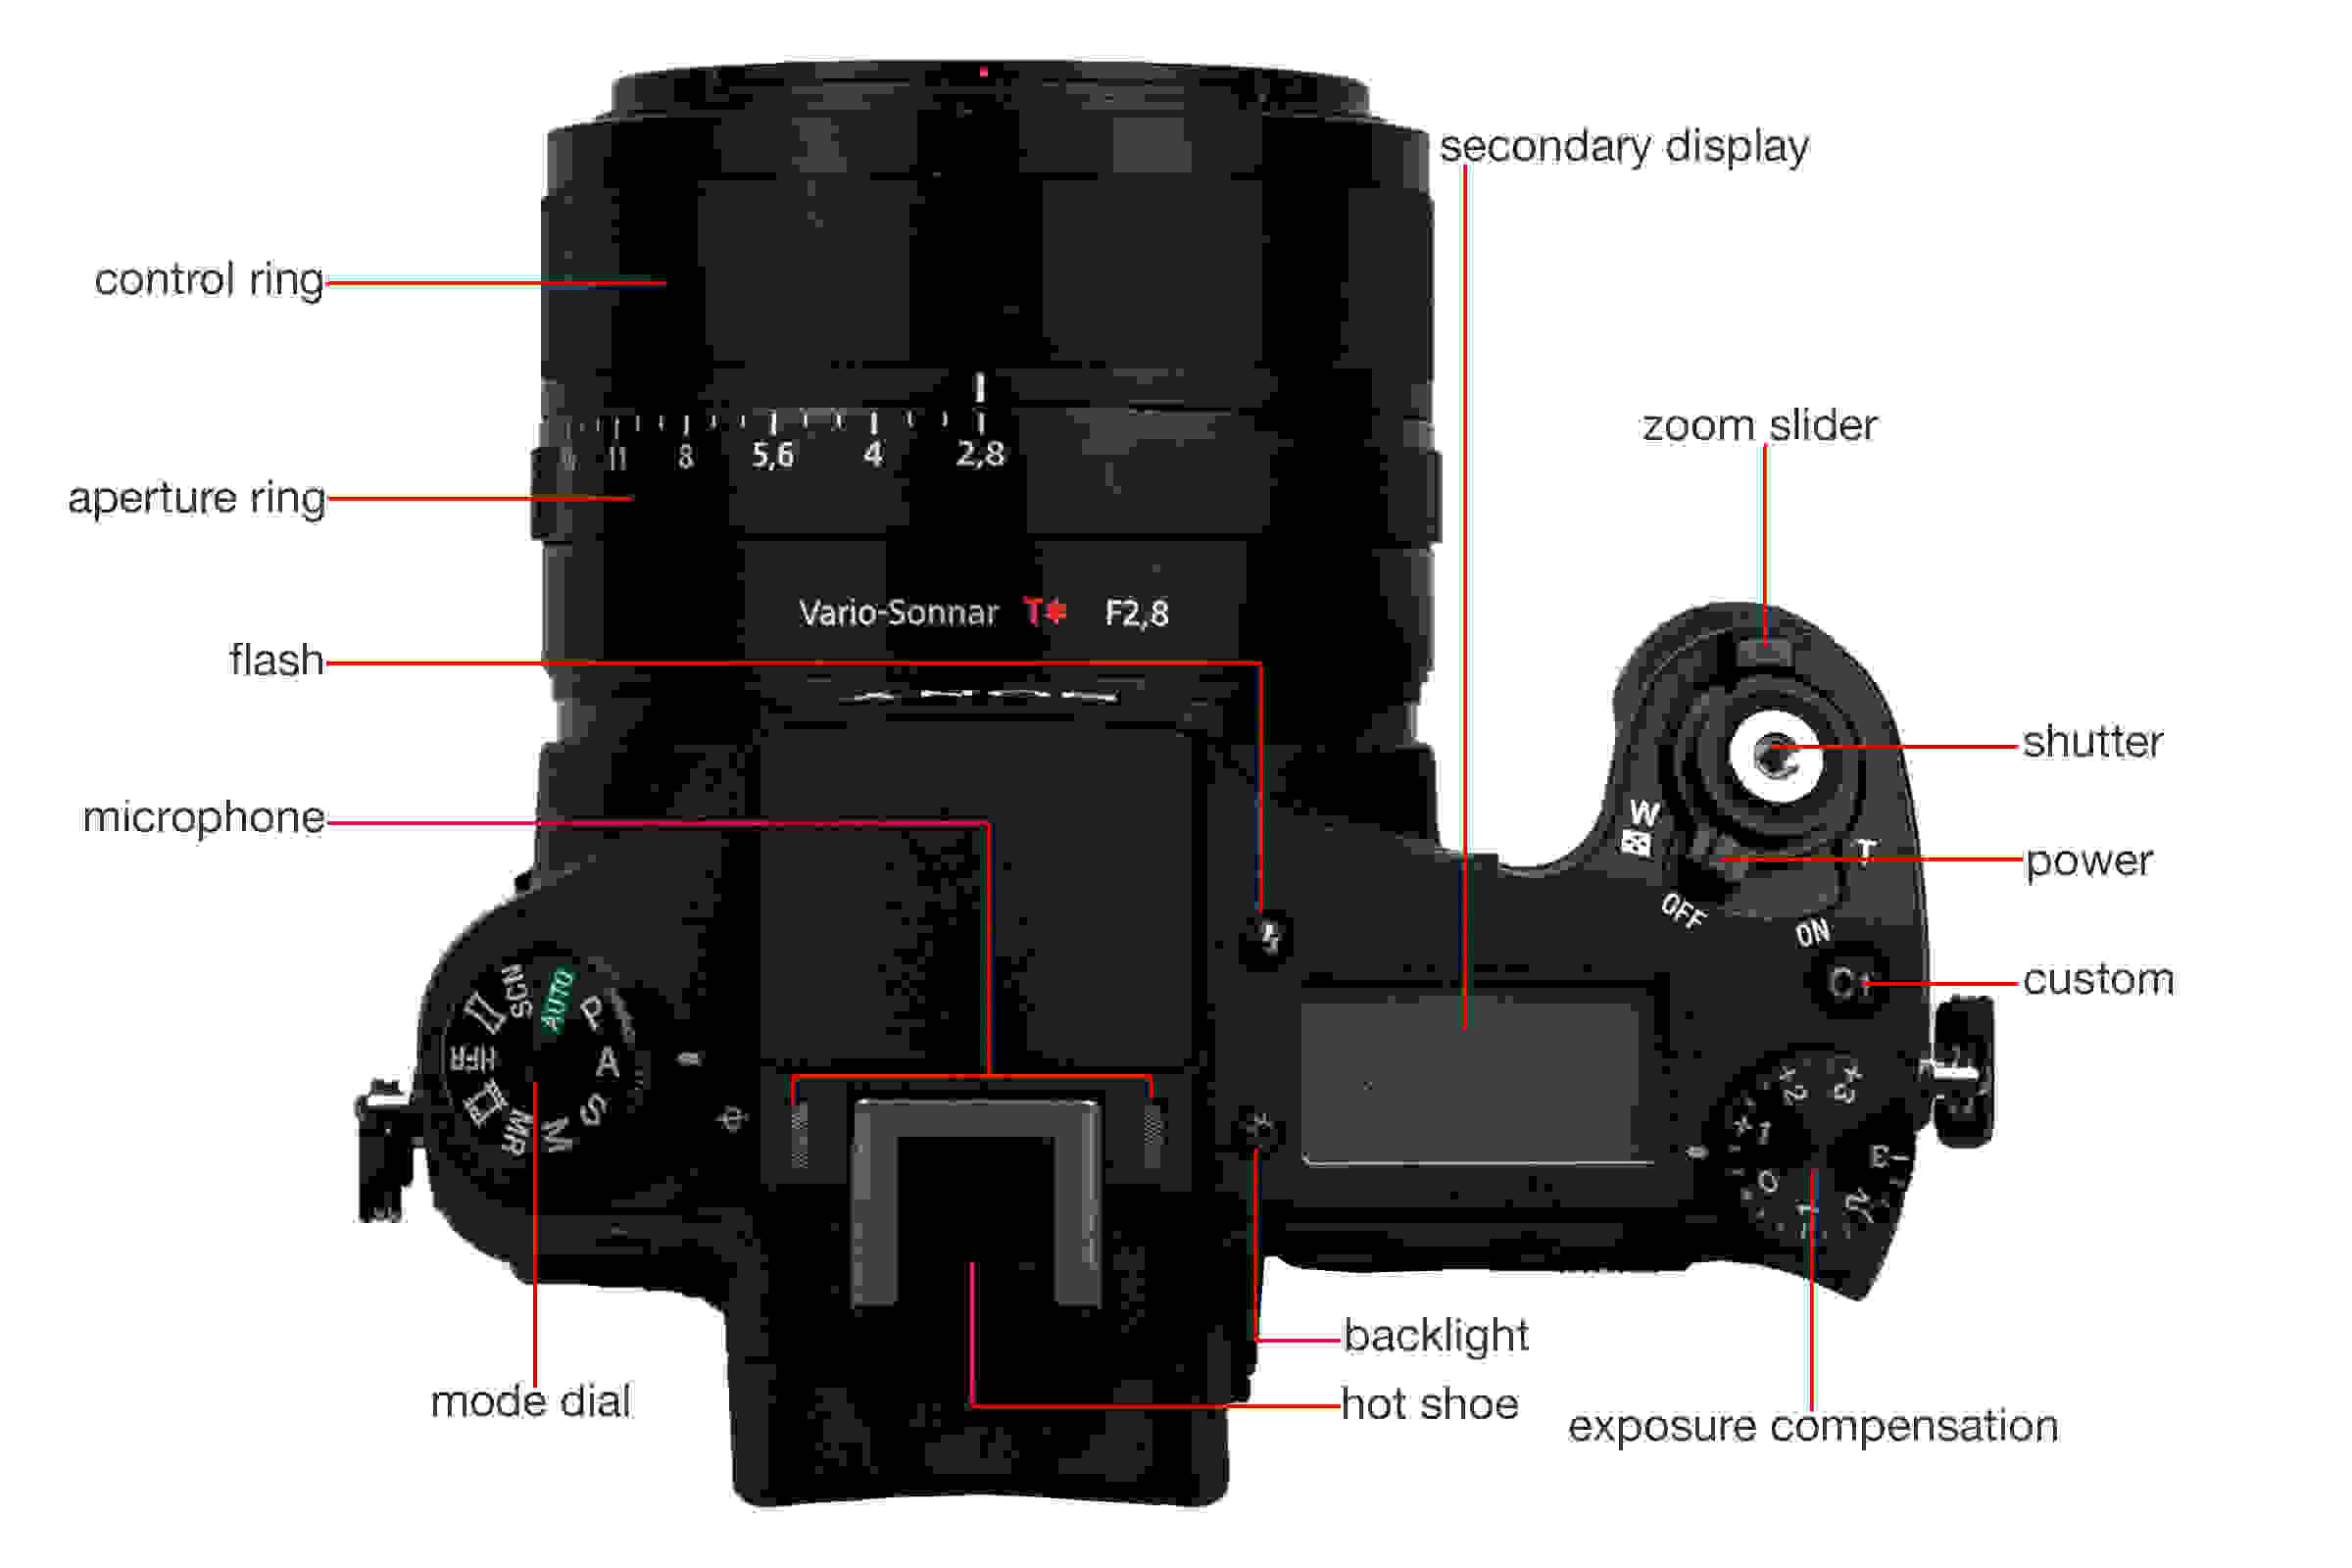 Top view of the Sony Cyber-Shot RX10 II.